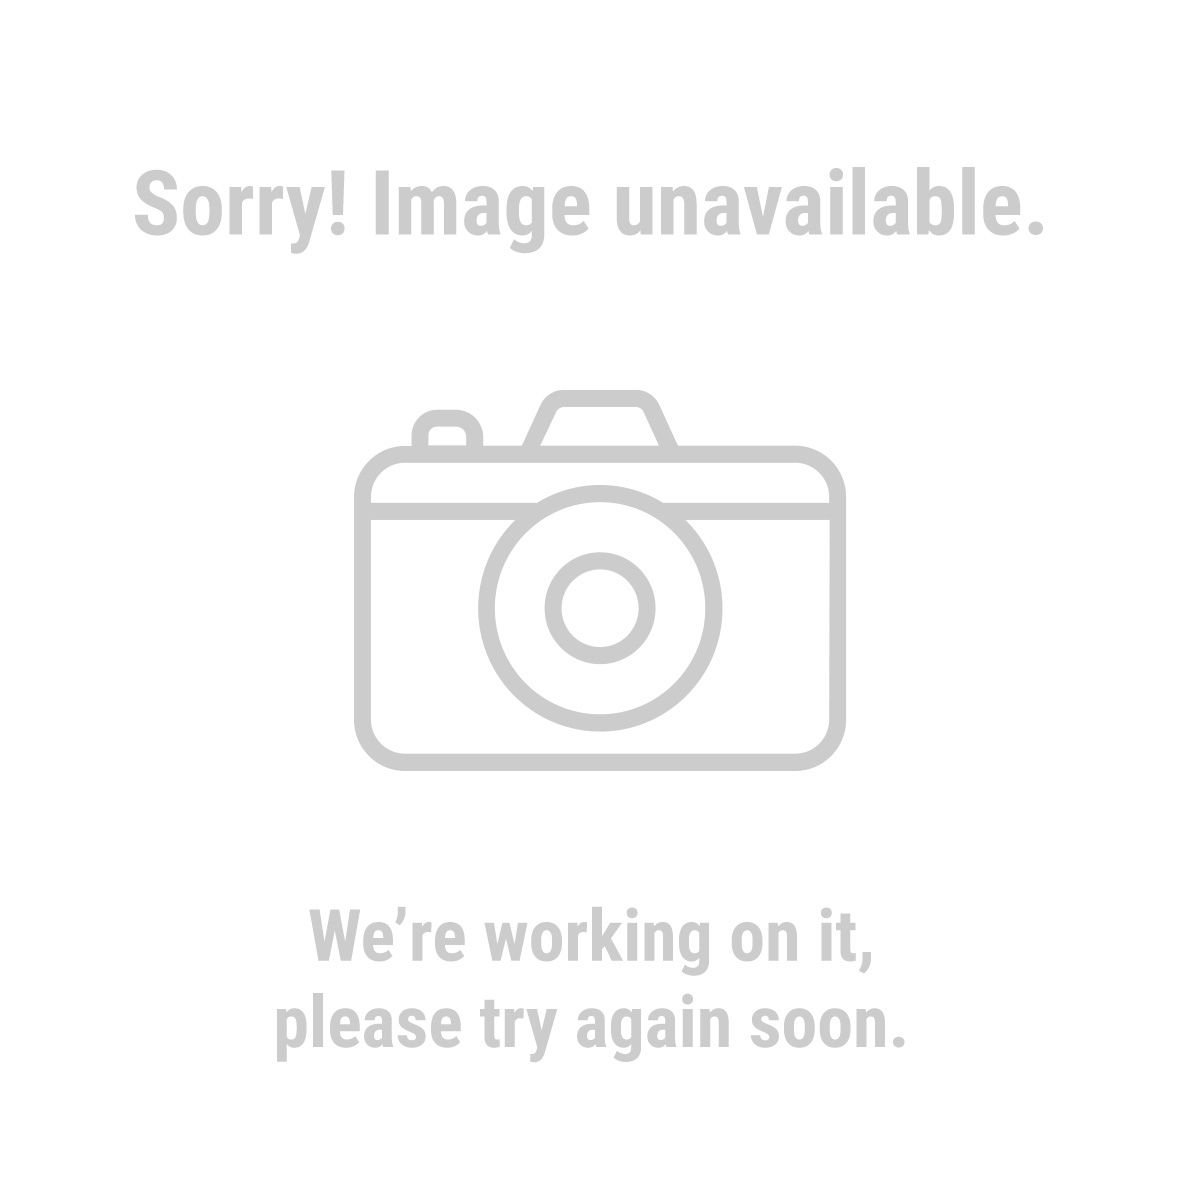 Pittsburgh 36930 16 Piece Wrench Rack